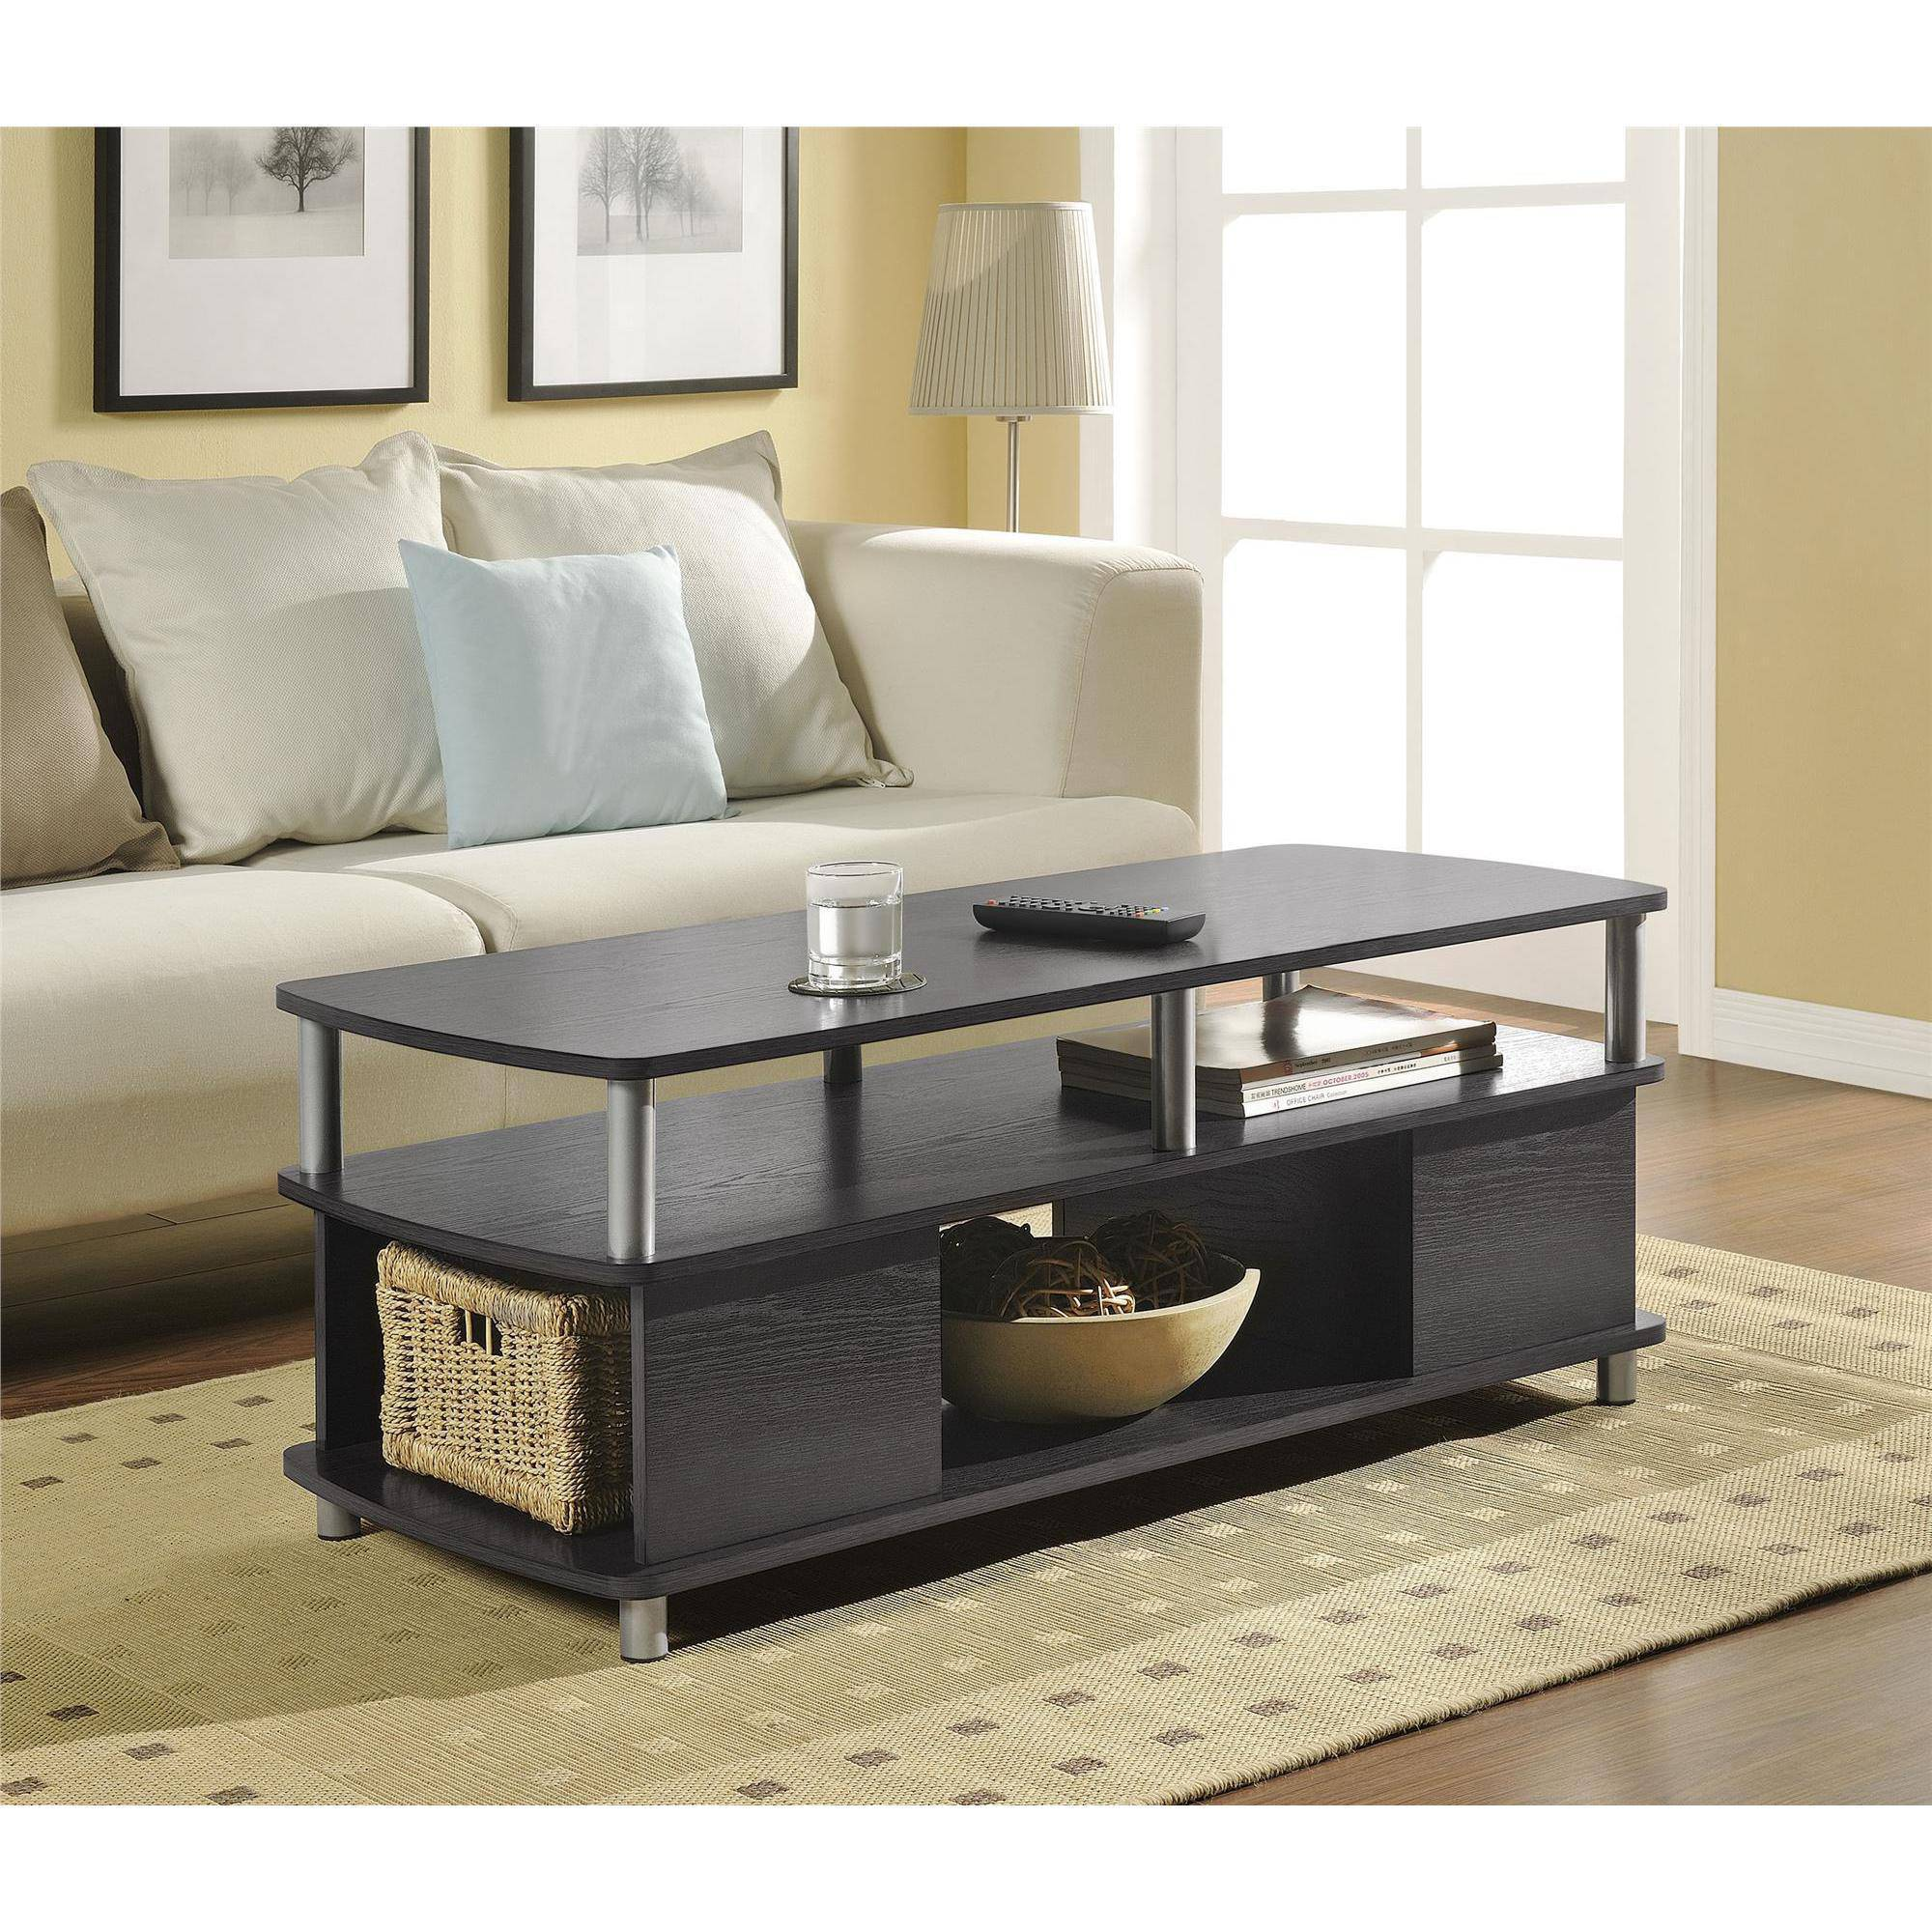 Altra Furniture 5094096 Carson Coffee Table Espresso eBay